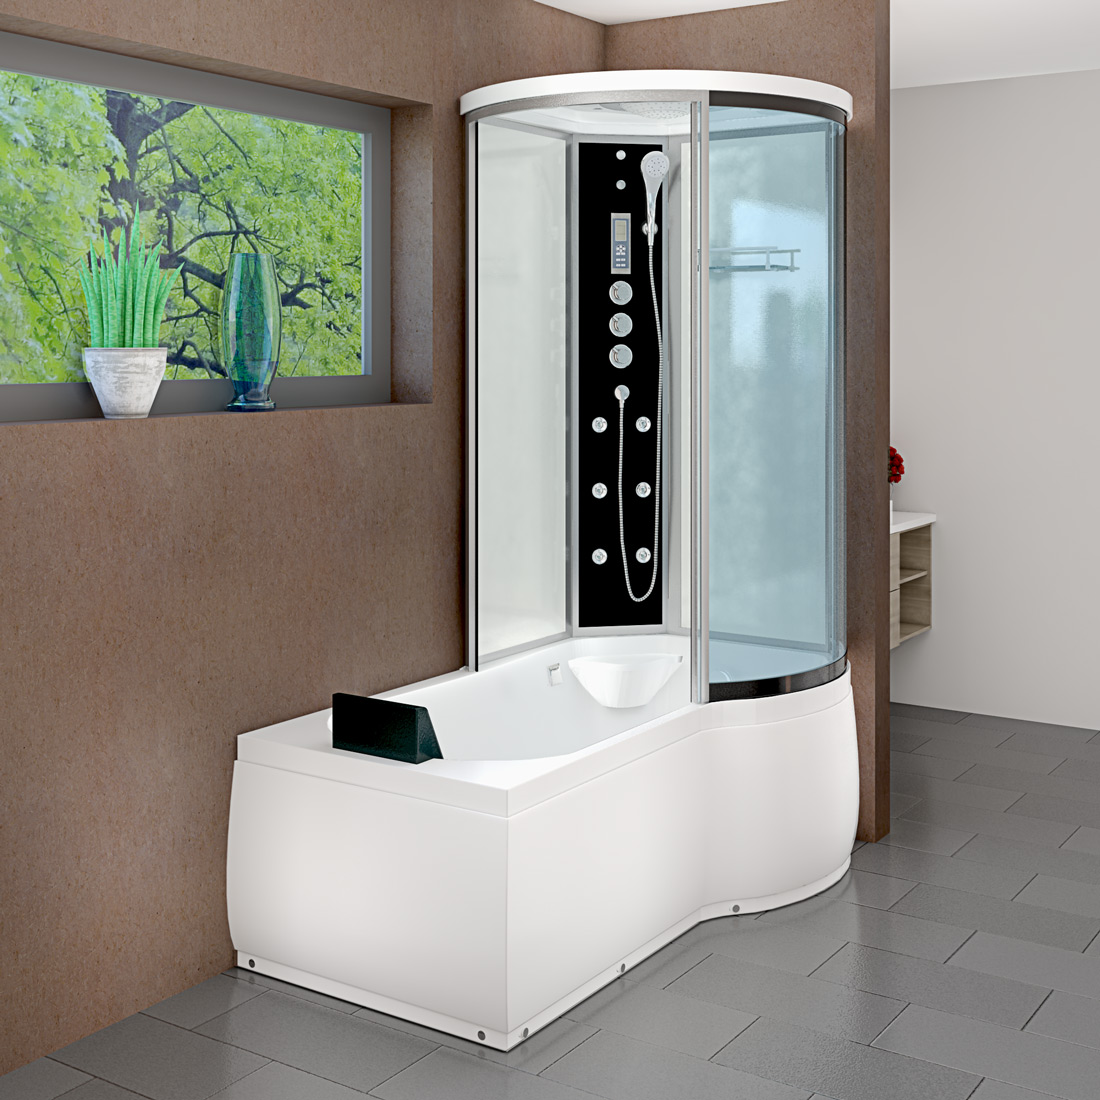 acquavapore dtp8055 a005l wanne duschtempel badewanne dusche duschkabine 170x98 ebay. Black Bedroom Furniture Sets. Home Design Ideas